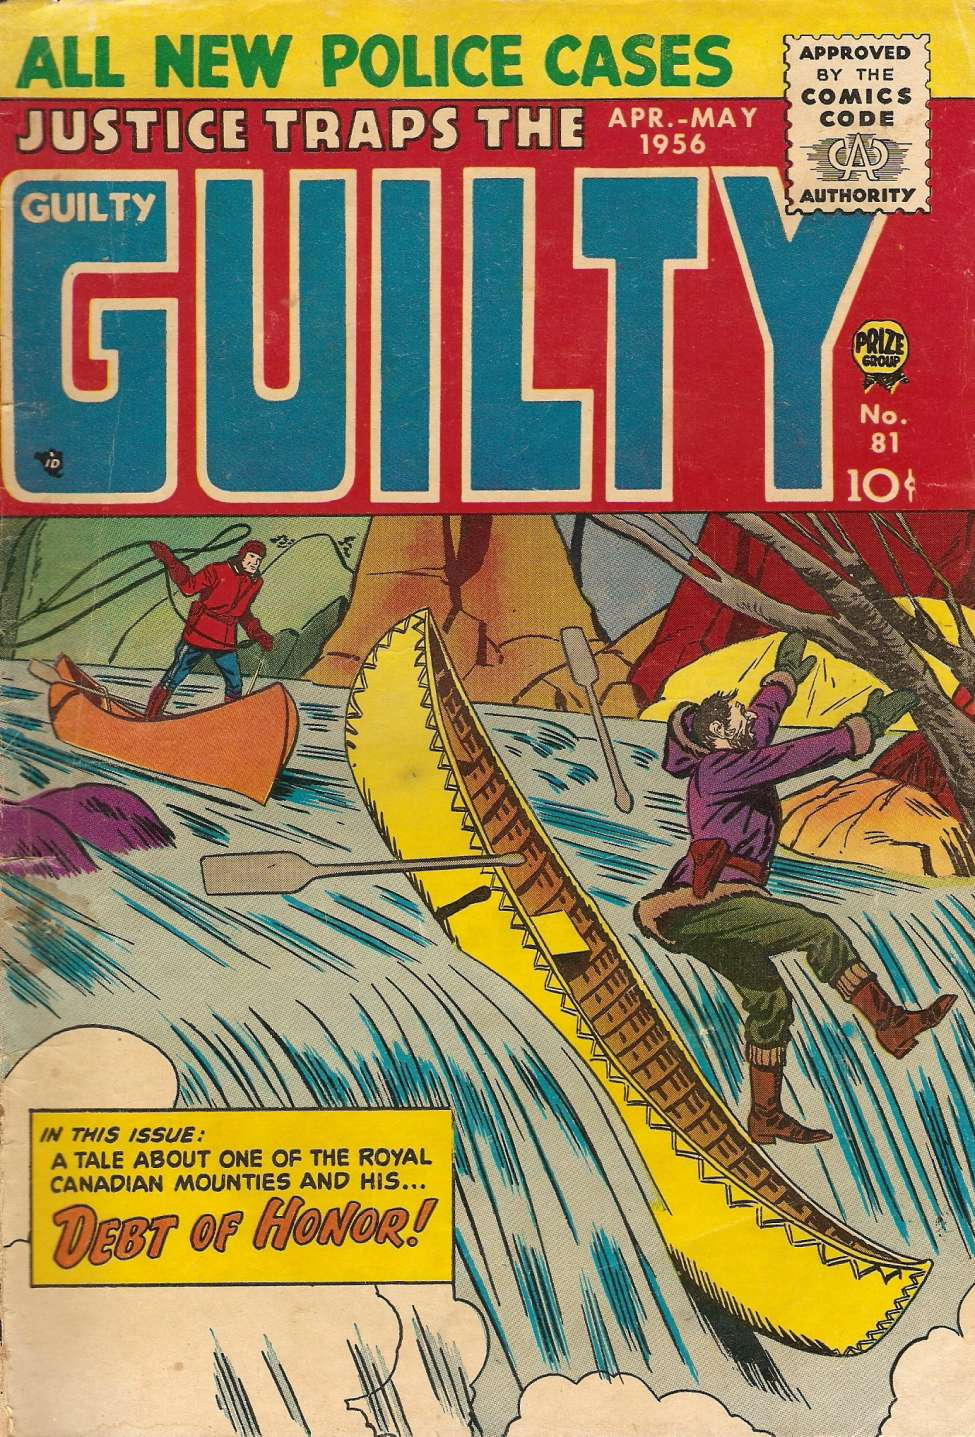 Comic Book Cover For Justice Traps the Guilty v9 3 (81)